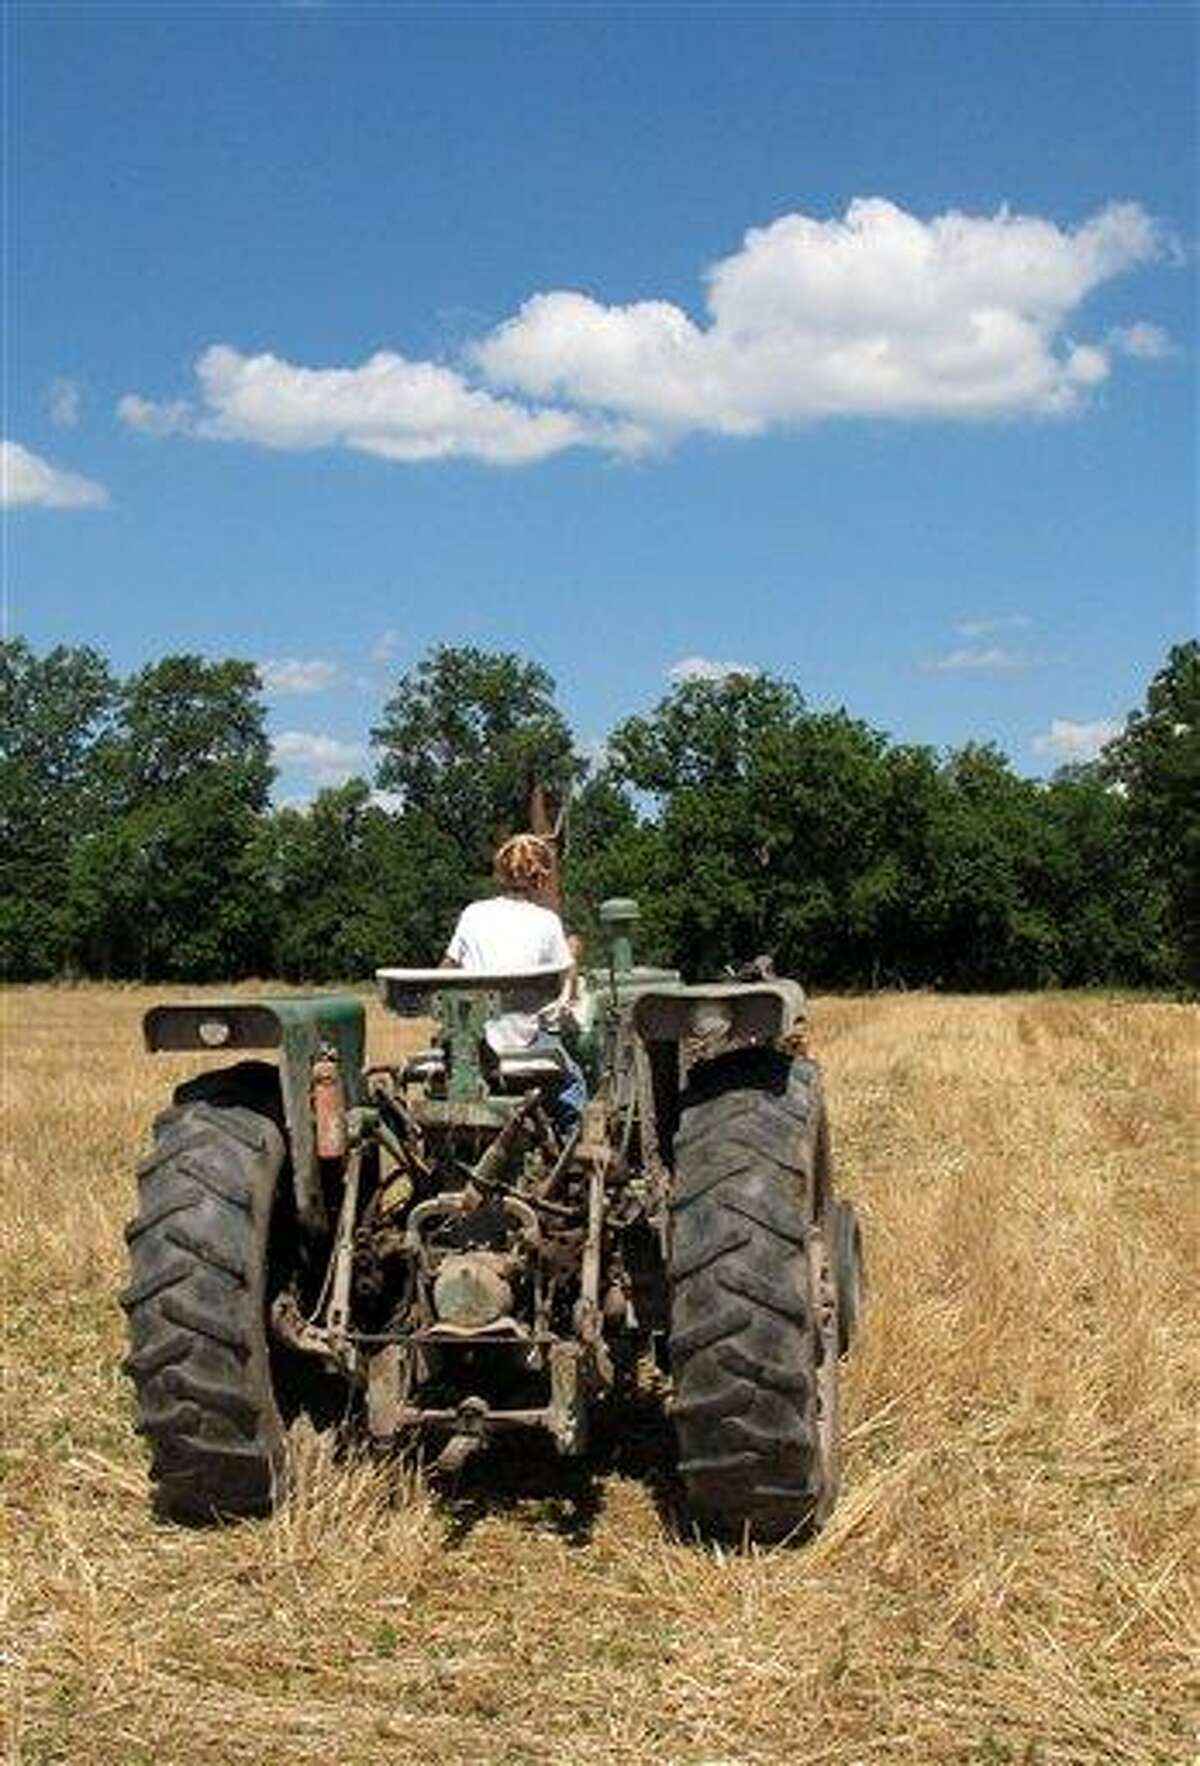 Jacob guides a tractor through a bean field June 20 on his grandparents' property near Fults, Ill. Associated Press